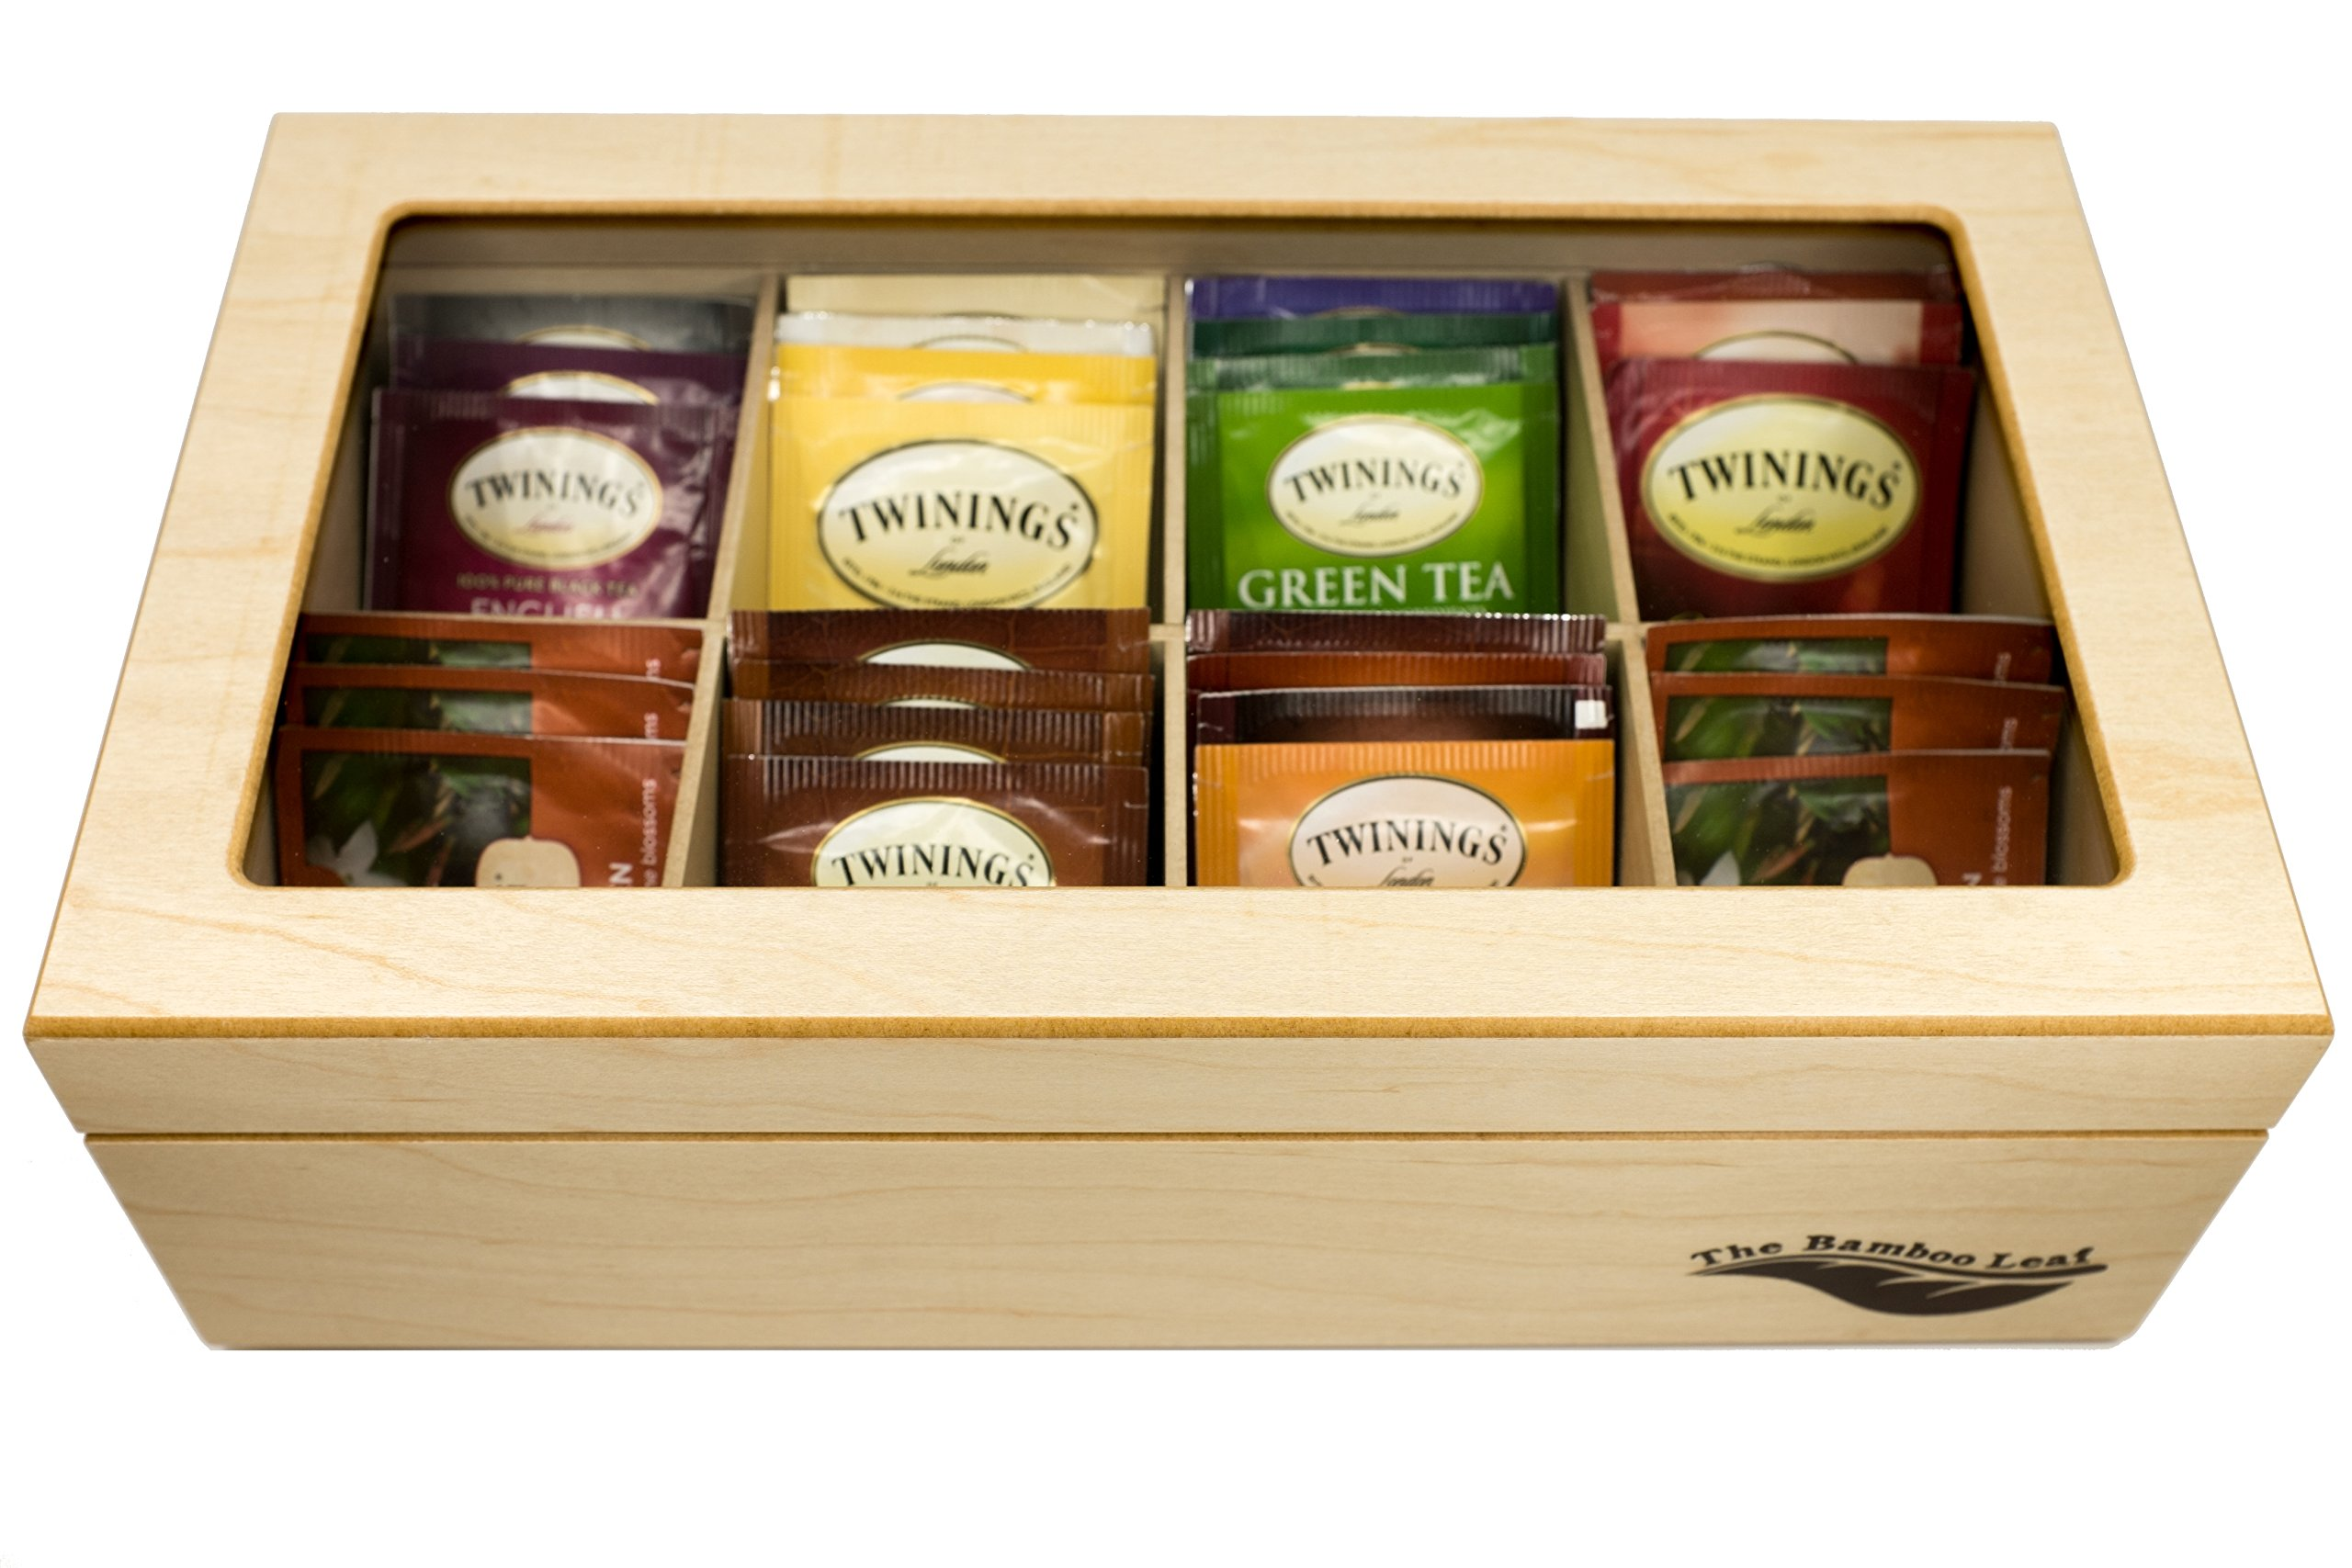 The Bamboo Leaf Luxury Wooden Tea BoxStorage Chest, 8 Compartments w/Glass Window (Natural) by The Bamboo Leaf (Image #3)